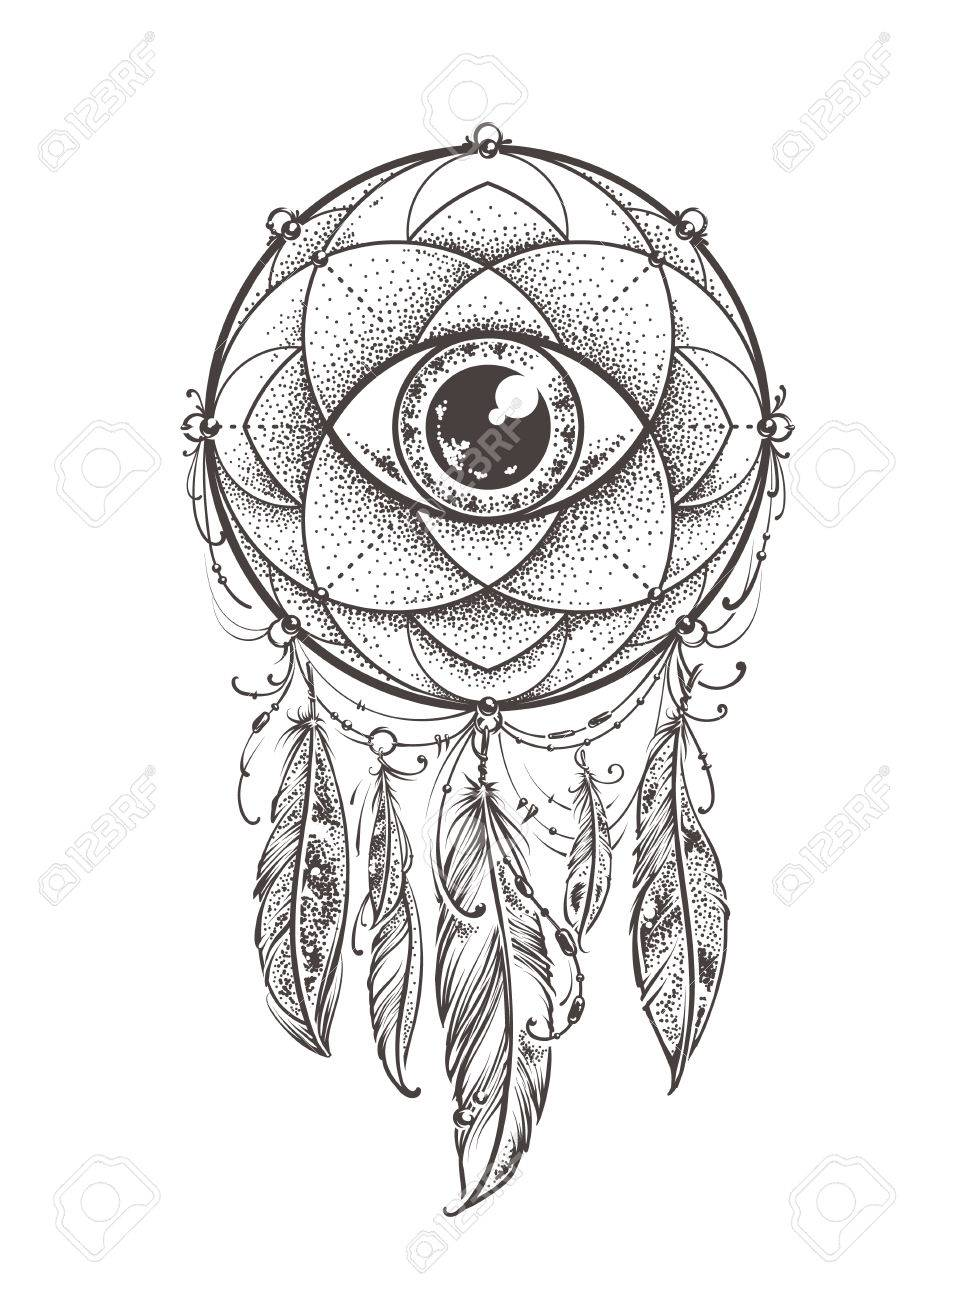 Search For Dreamcatcher Drawing At Getdrawings Com